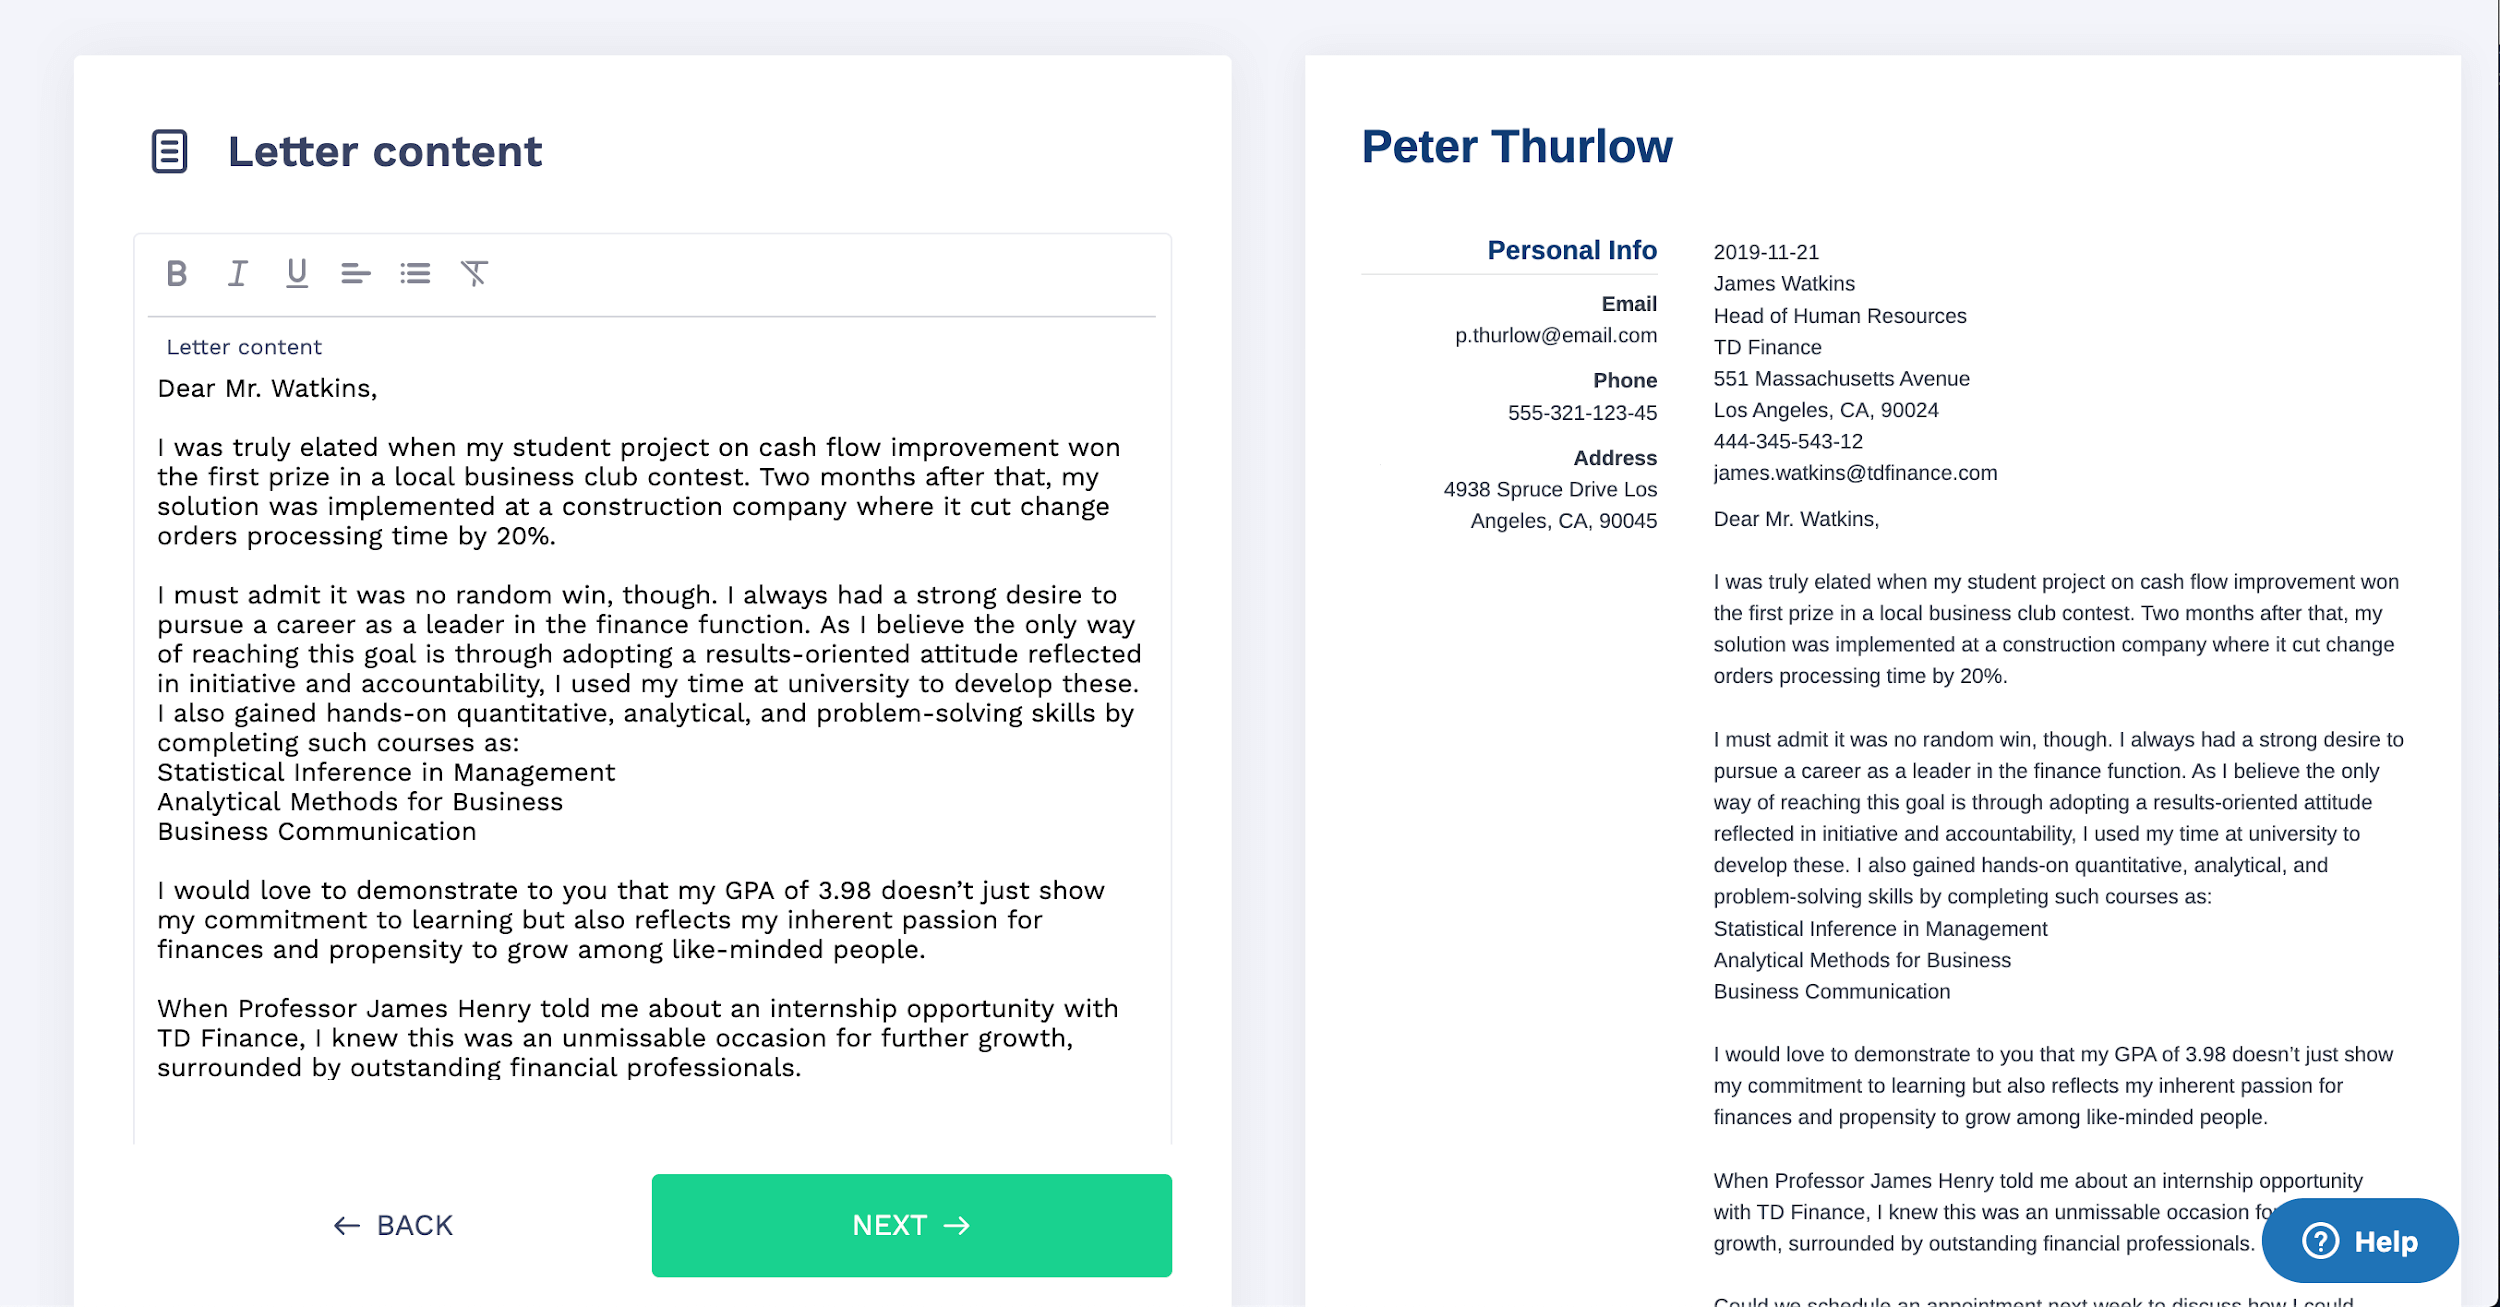 Cover Letter Format: Examples You Can Copy and Use + a Full ...